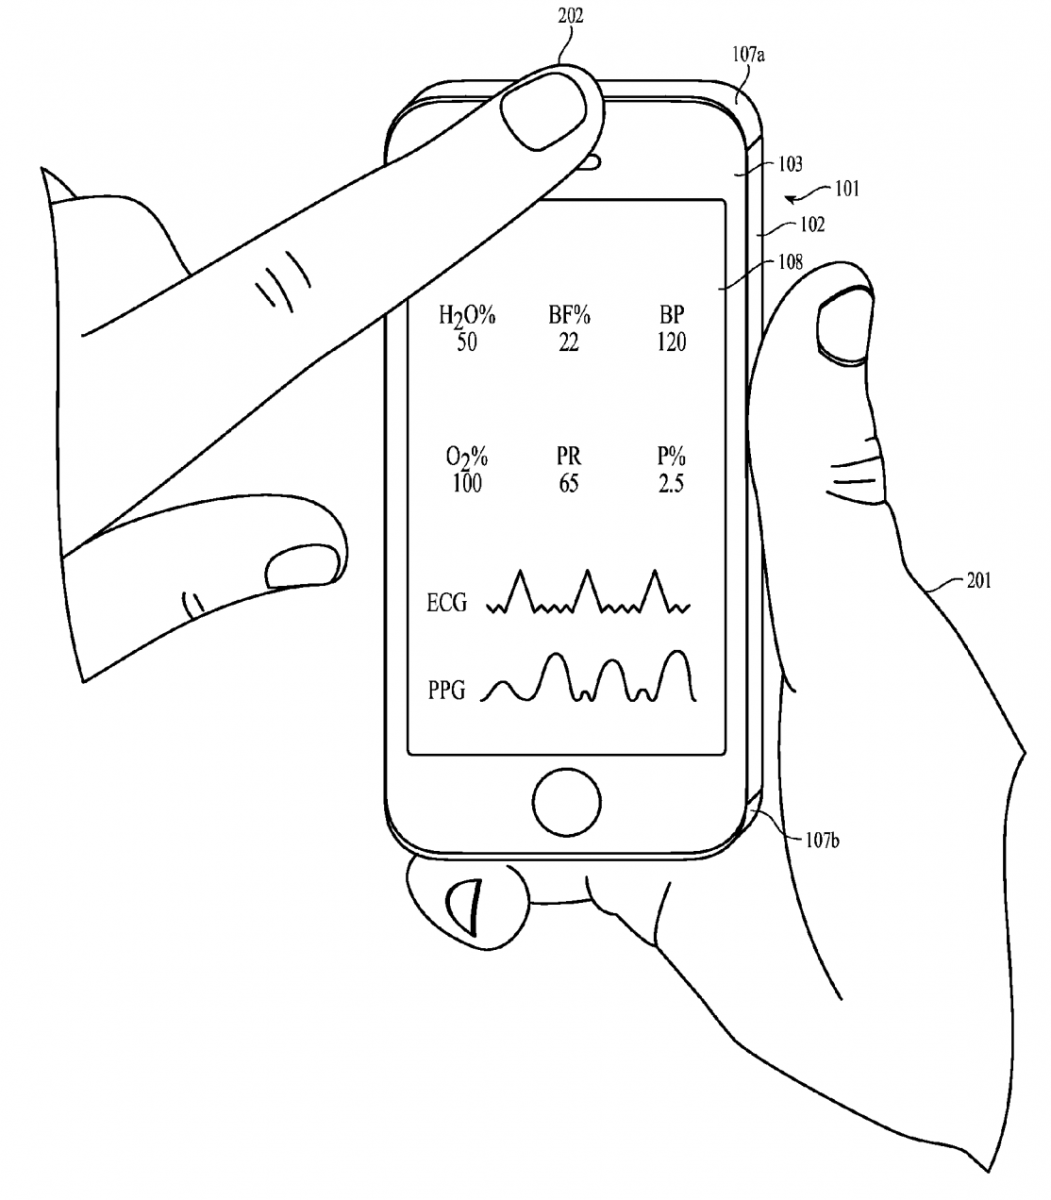 1051x1200 Newly Grantedpple Patent Shows Ways To Turnn Iphone Into